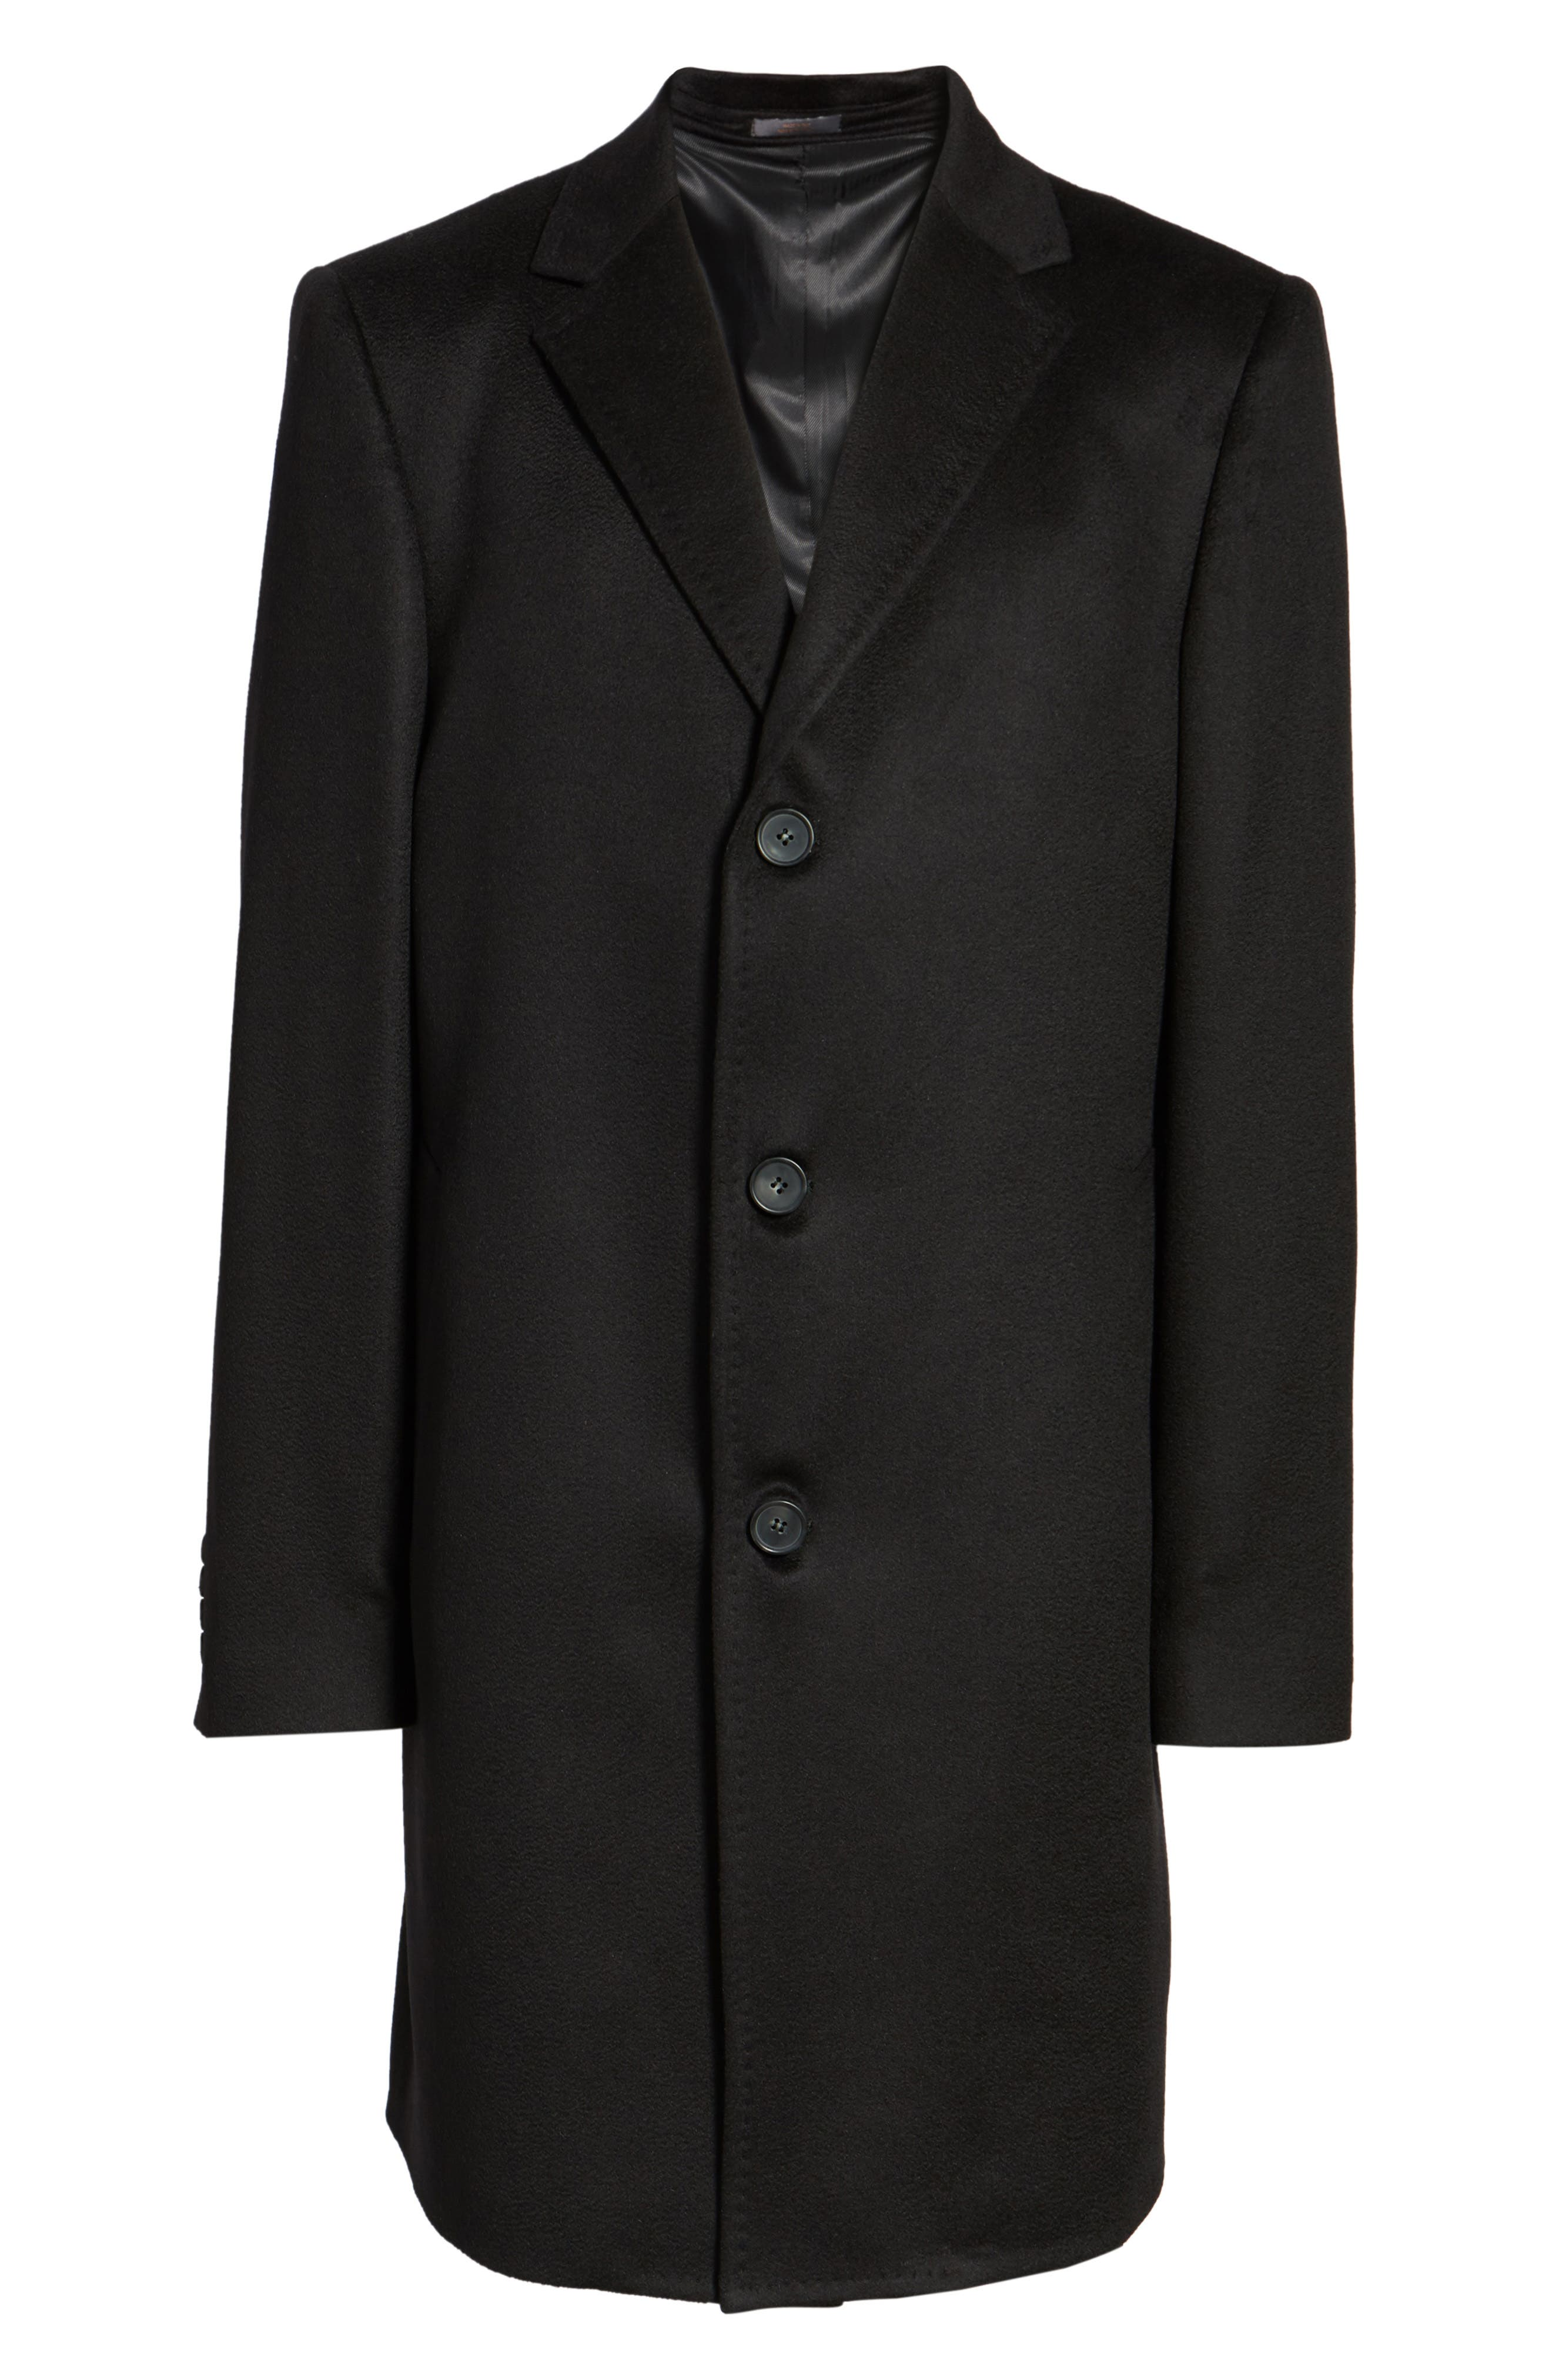 Carter Classic Fit Cashmere Overcoat,                             Alternate thumbnail 5, color,                             001